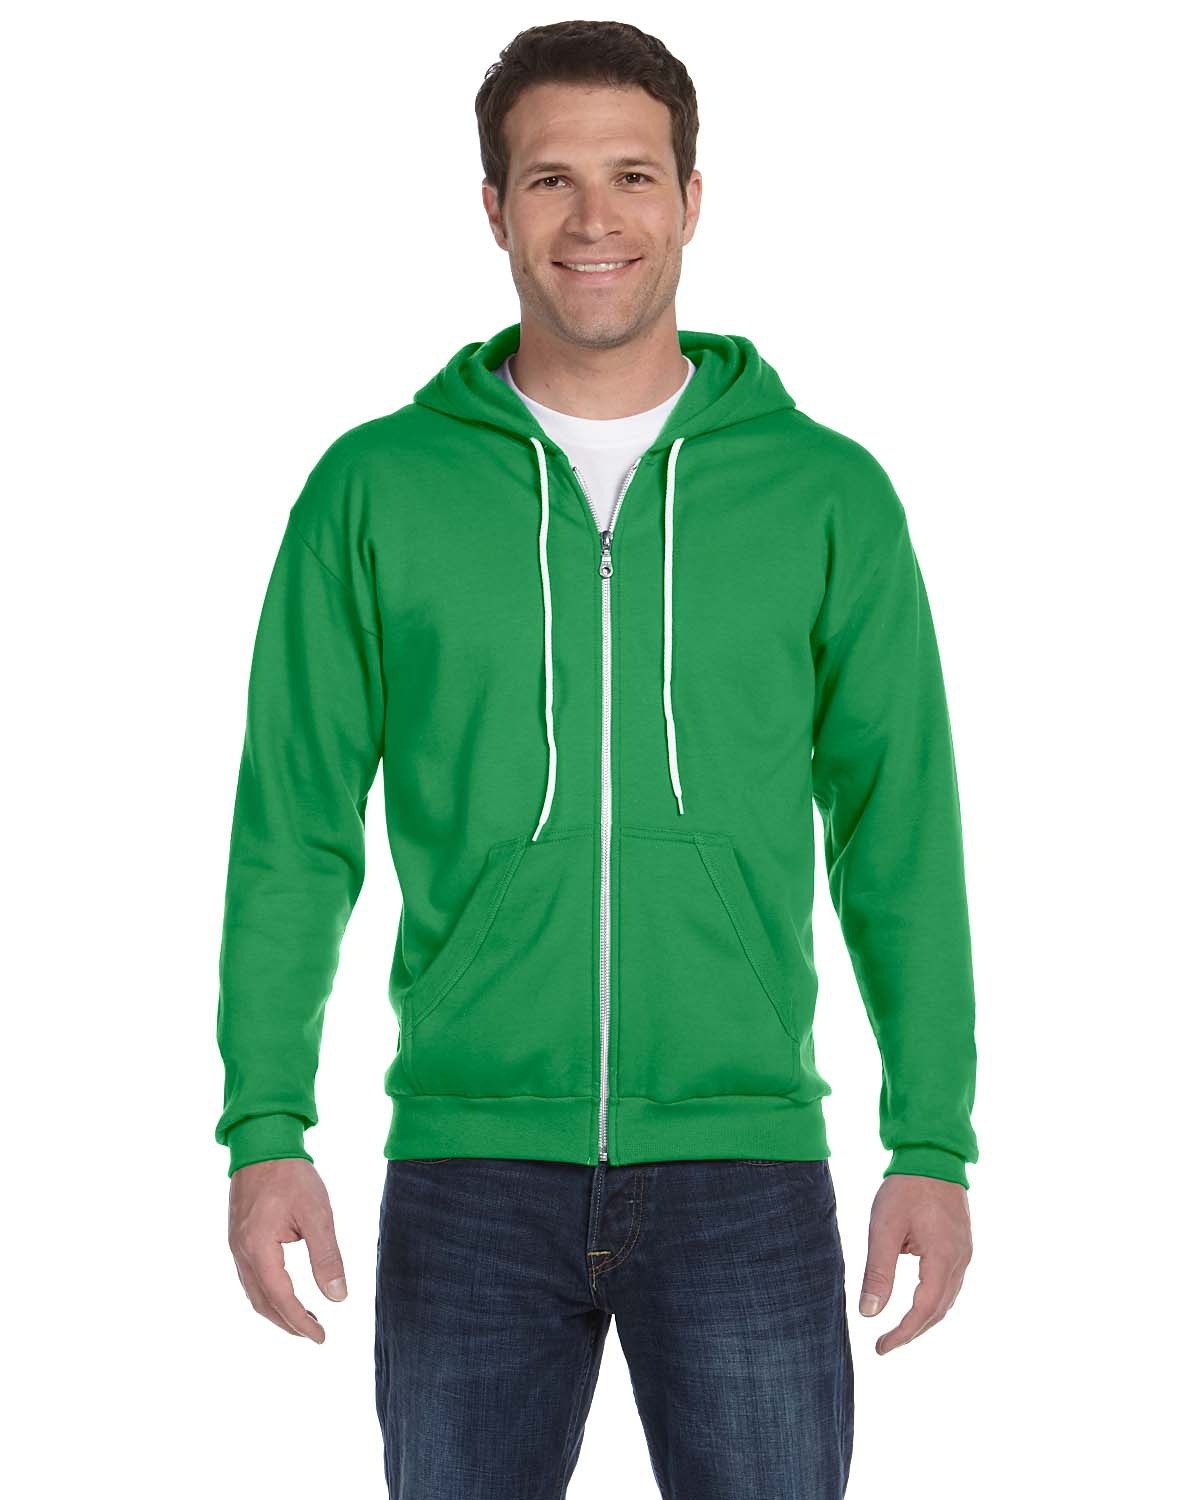 Anvil 71600 - Men's Fashion Full-Zip Hooded Sweatshirt